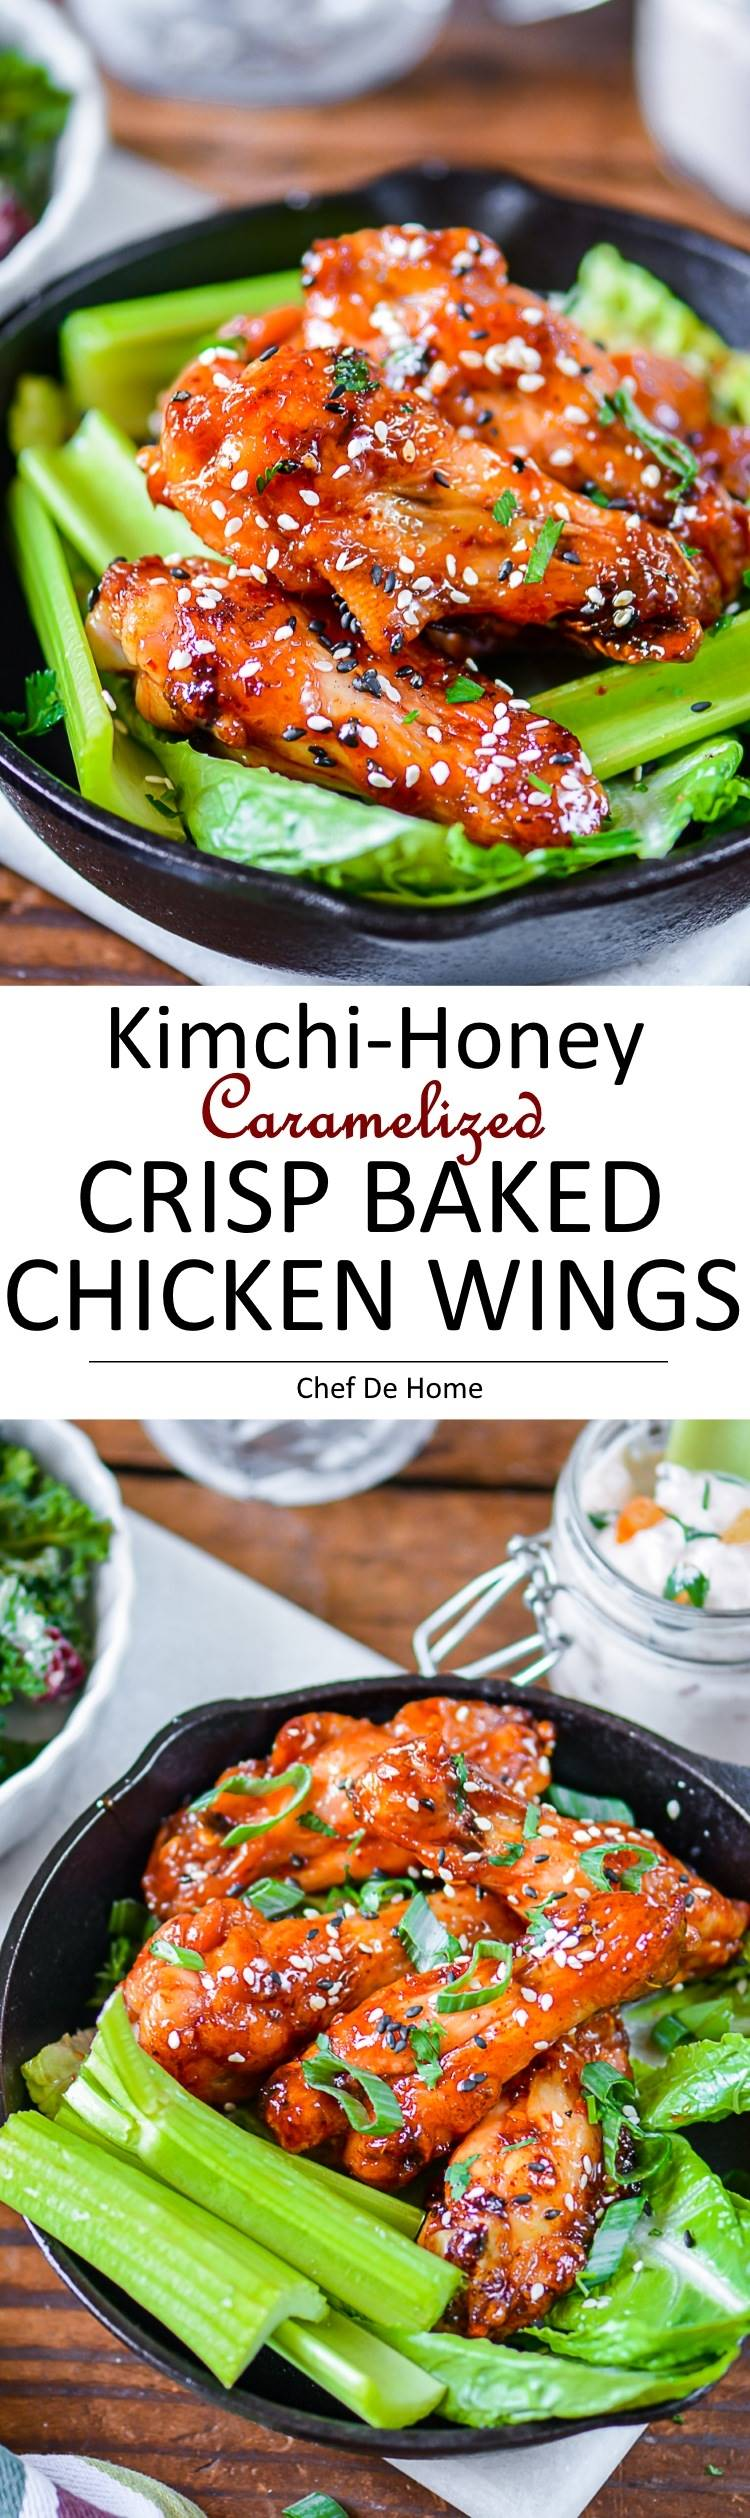 Crispy Baked Kimchi-Honey Caramelized Chicken Wings | chefdehome.com